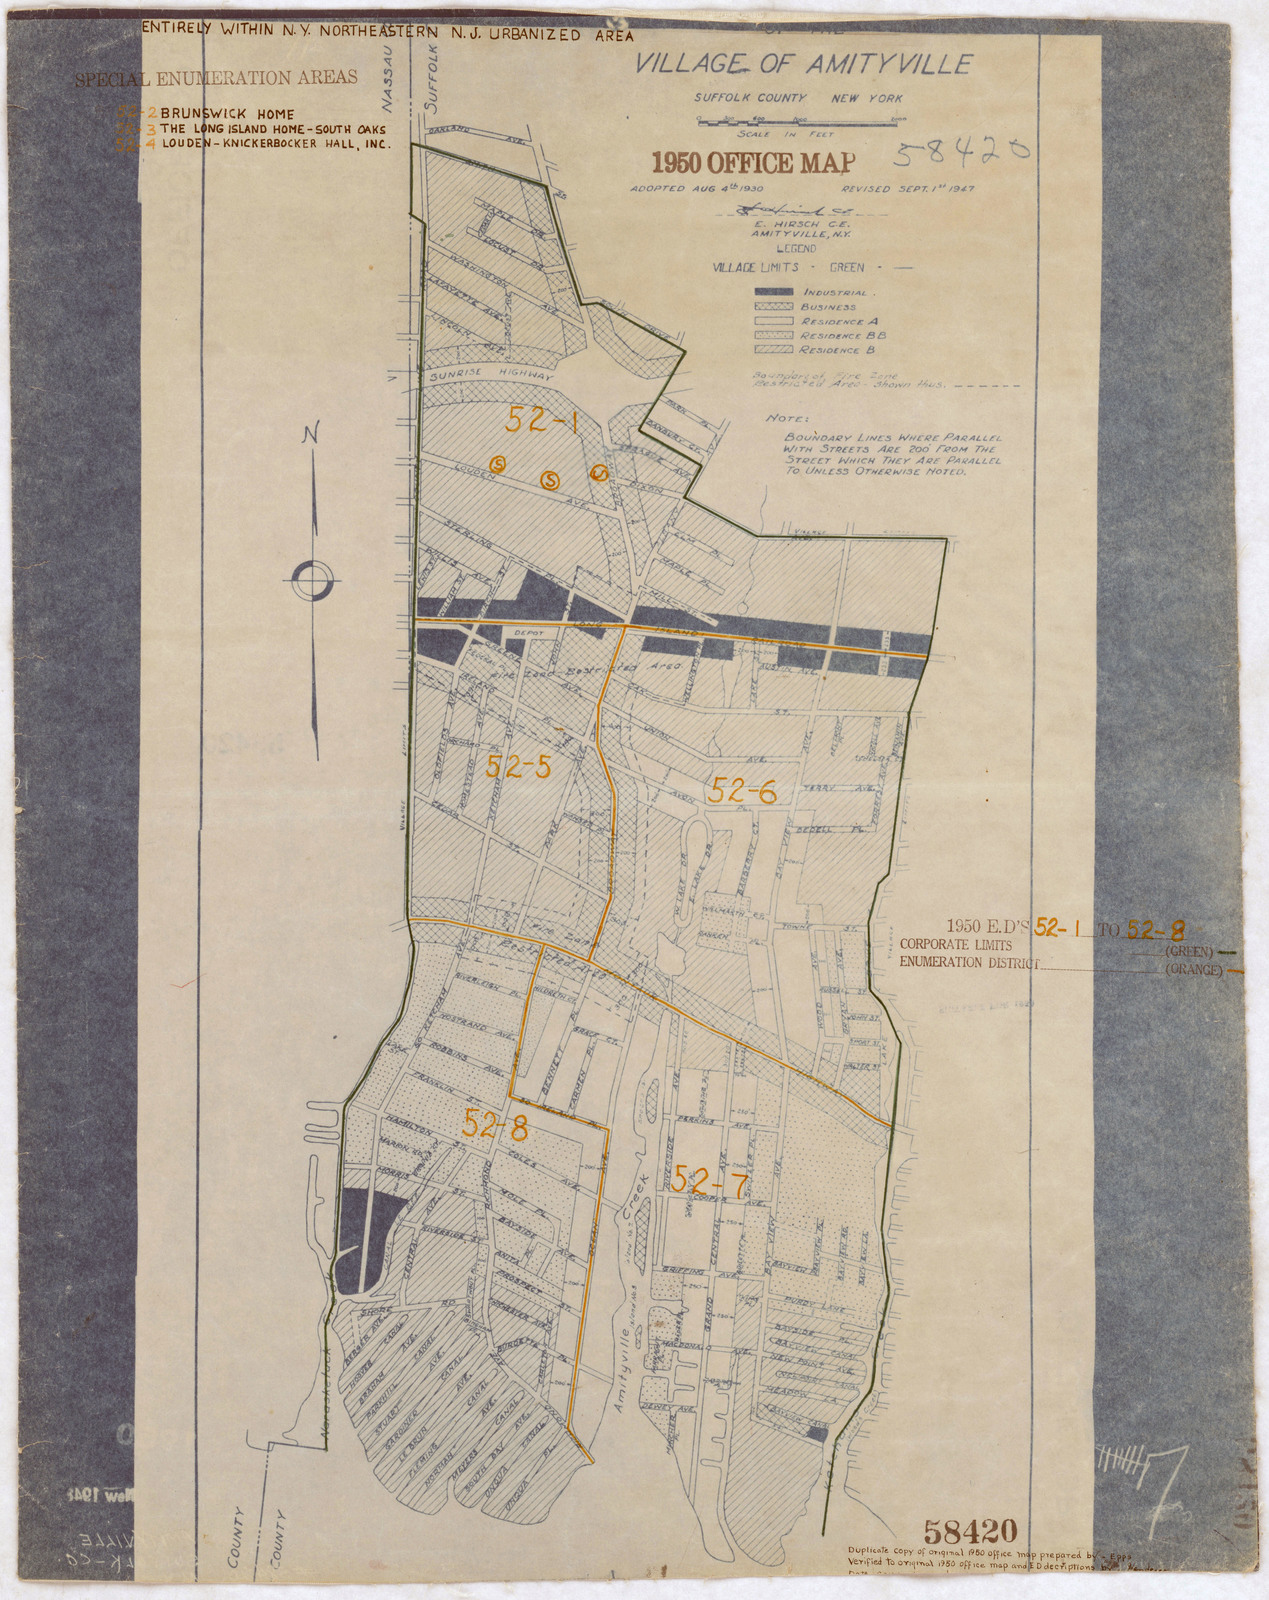 Amityville New York Map.1950 Census Enumeration District Maps New York Ny Suffolk